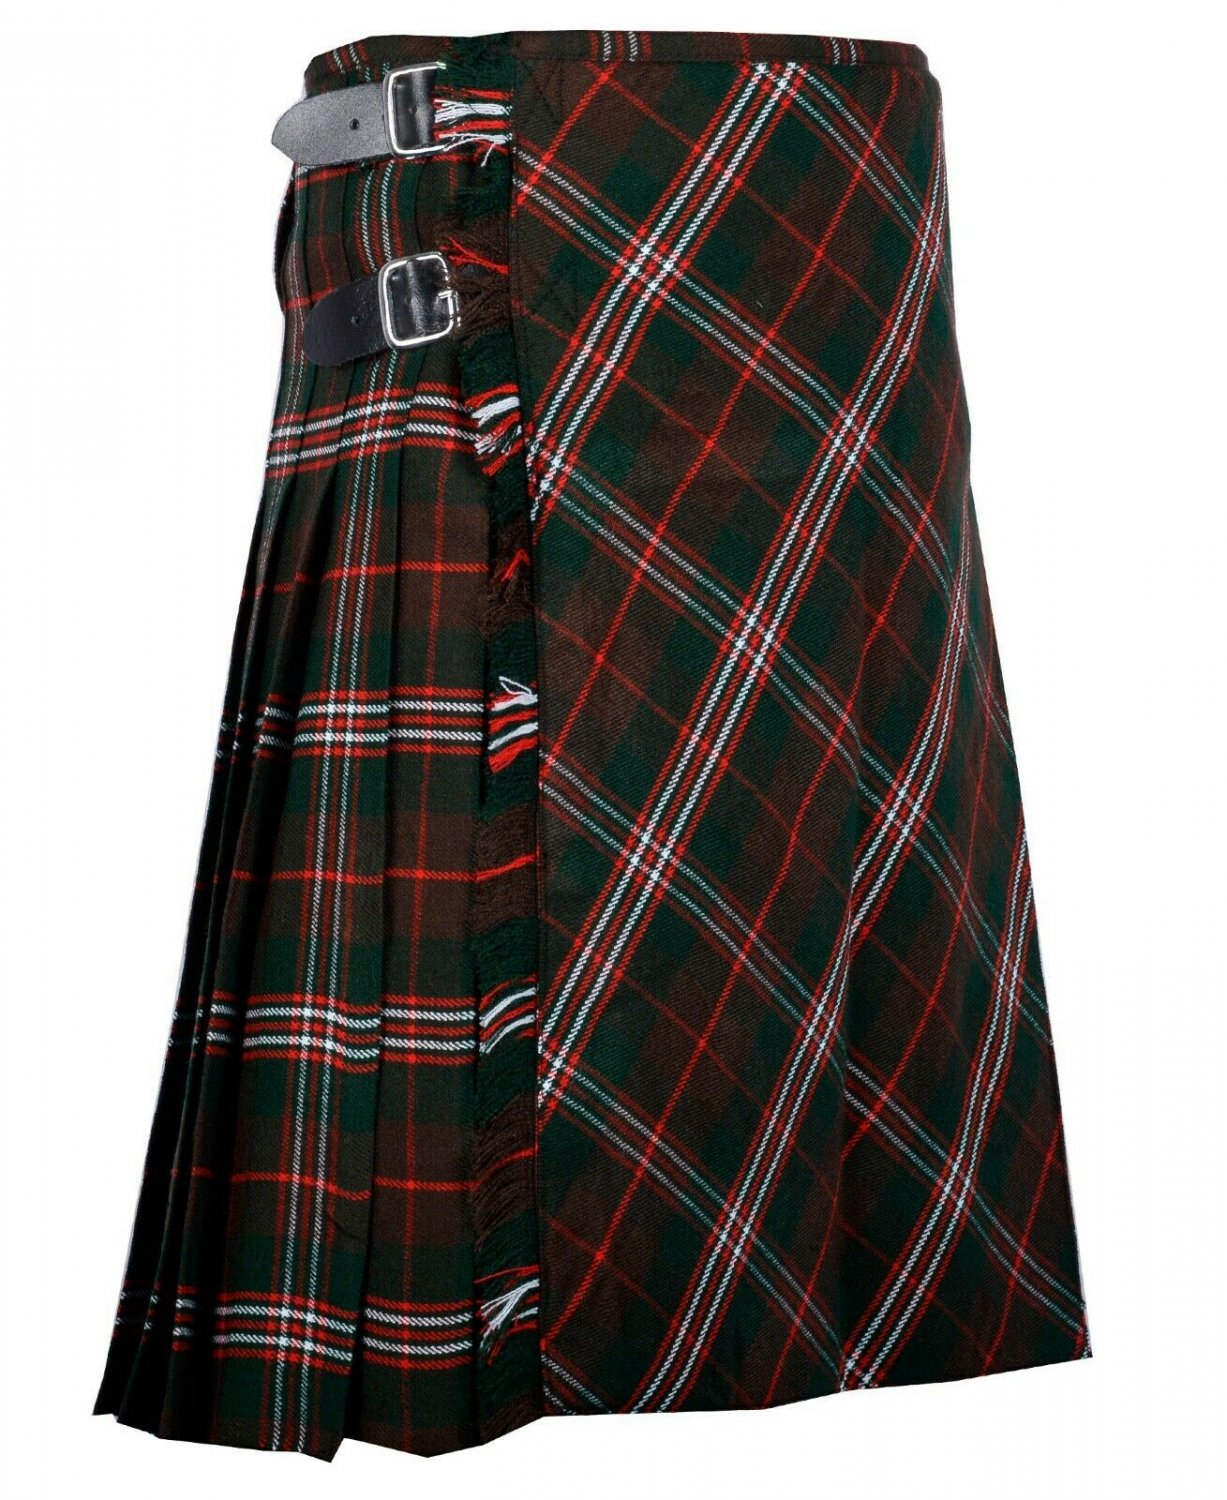 34 inches waist Bias Apron Traditional 5 Yard Scottish Kilt for Men - Scott Hunting Tartan